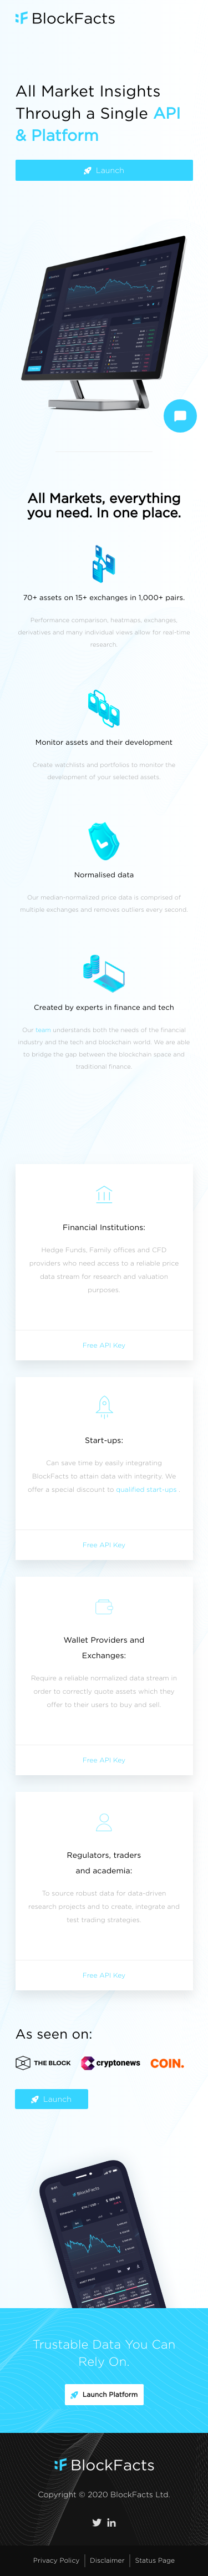 Example of Design for Finance, Investing, Mobile Landing Page by blockfacts.io | Mobile Landing Page Design